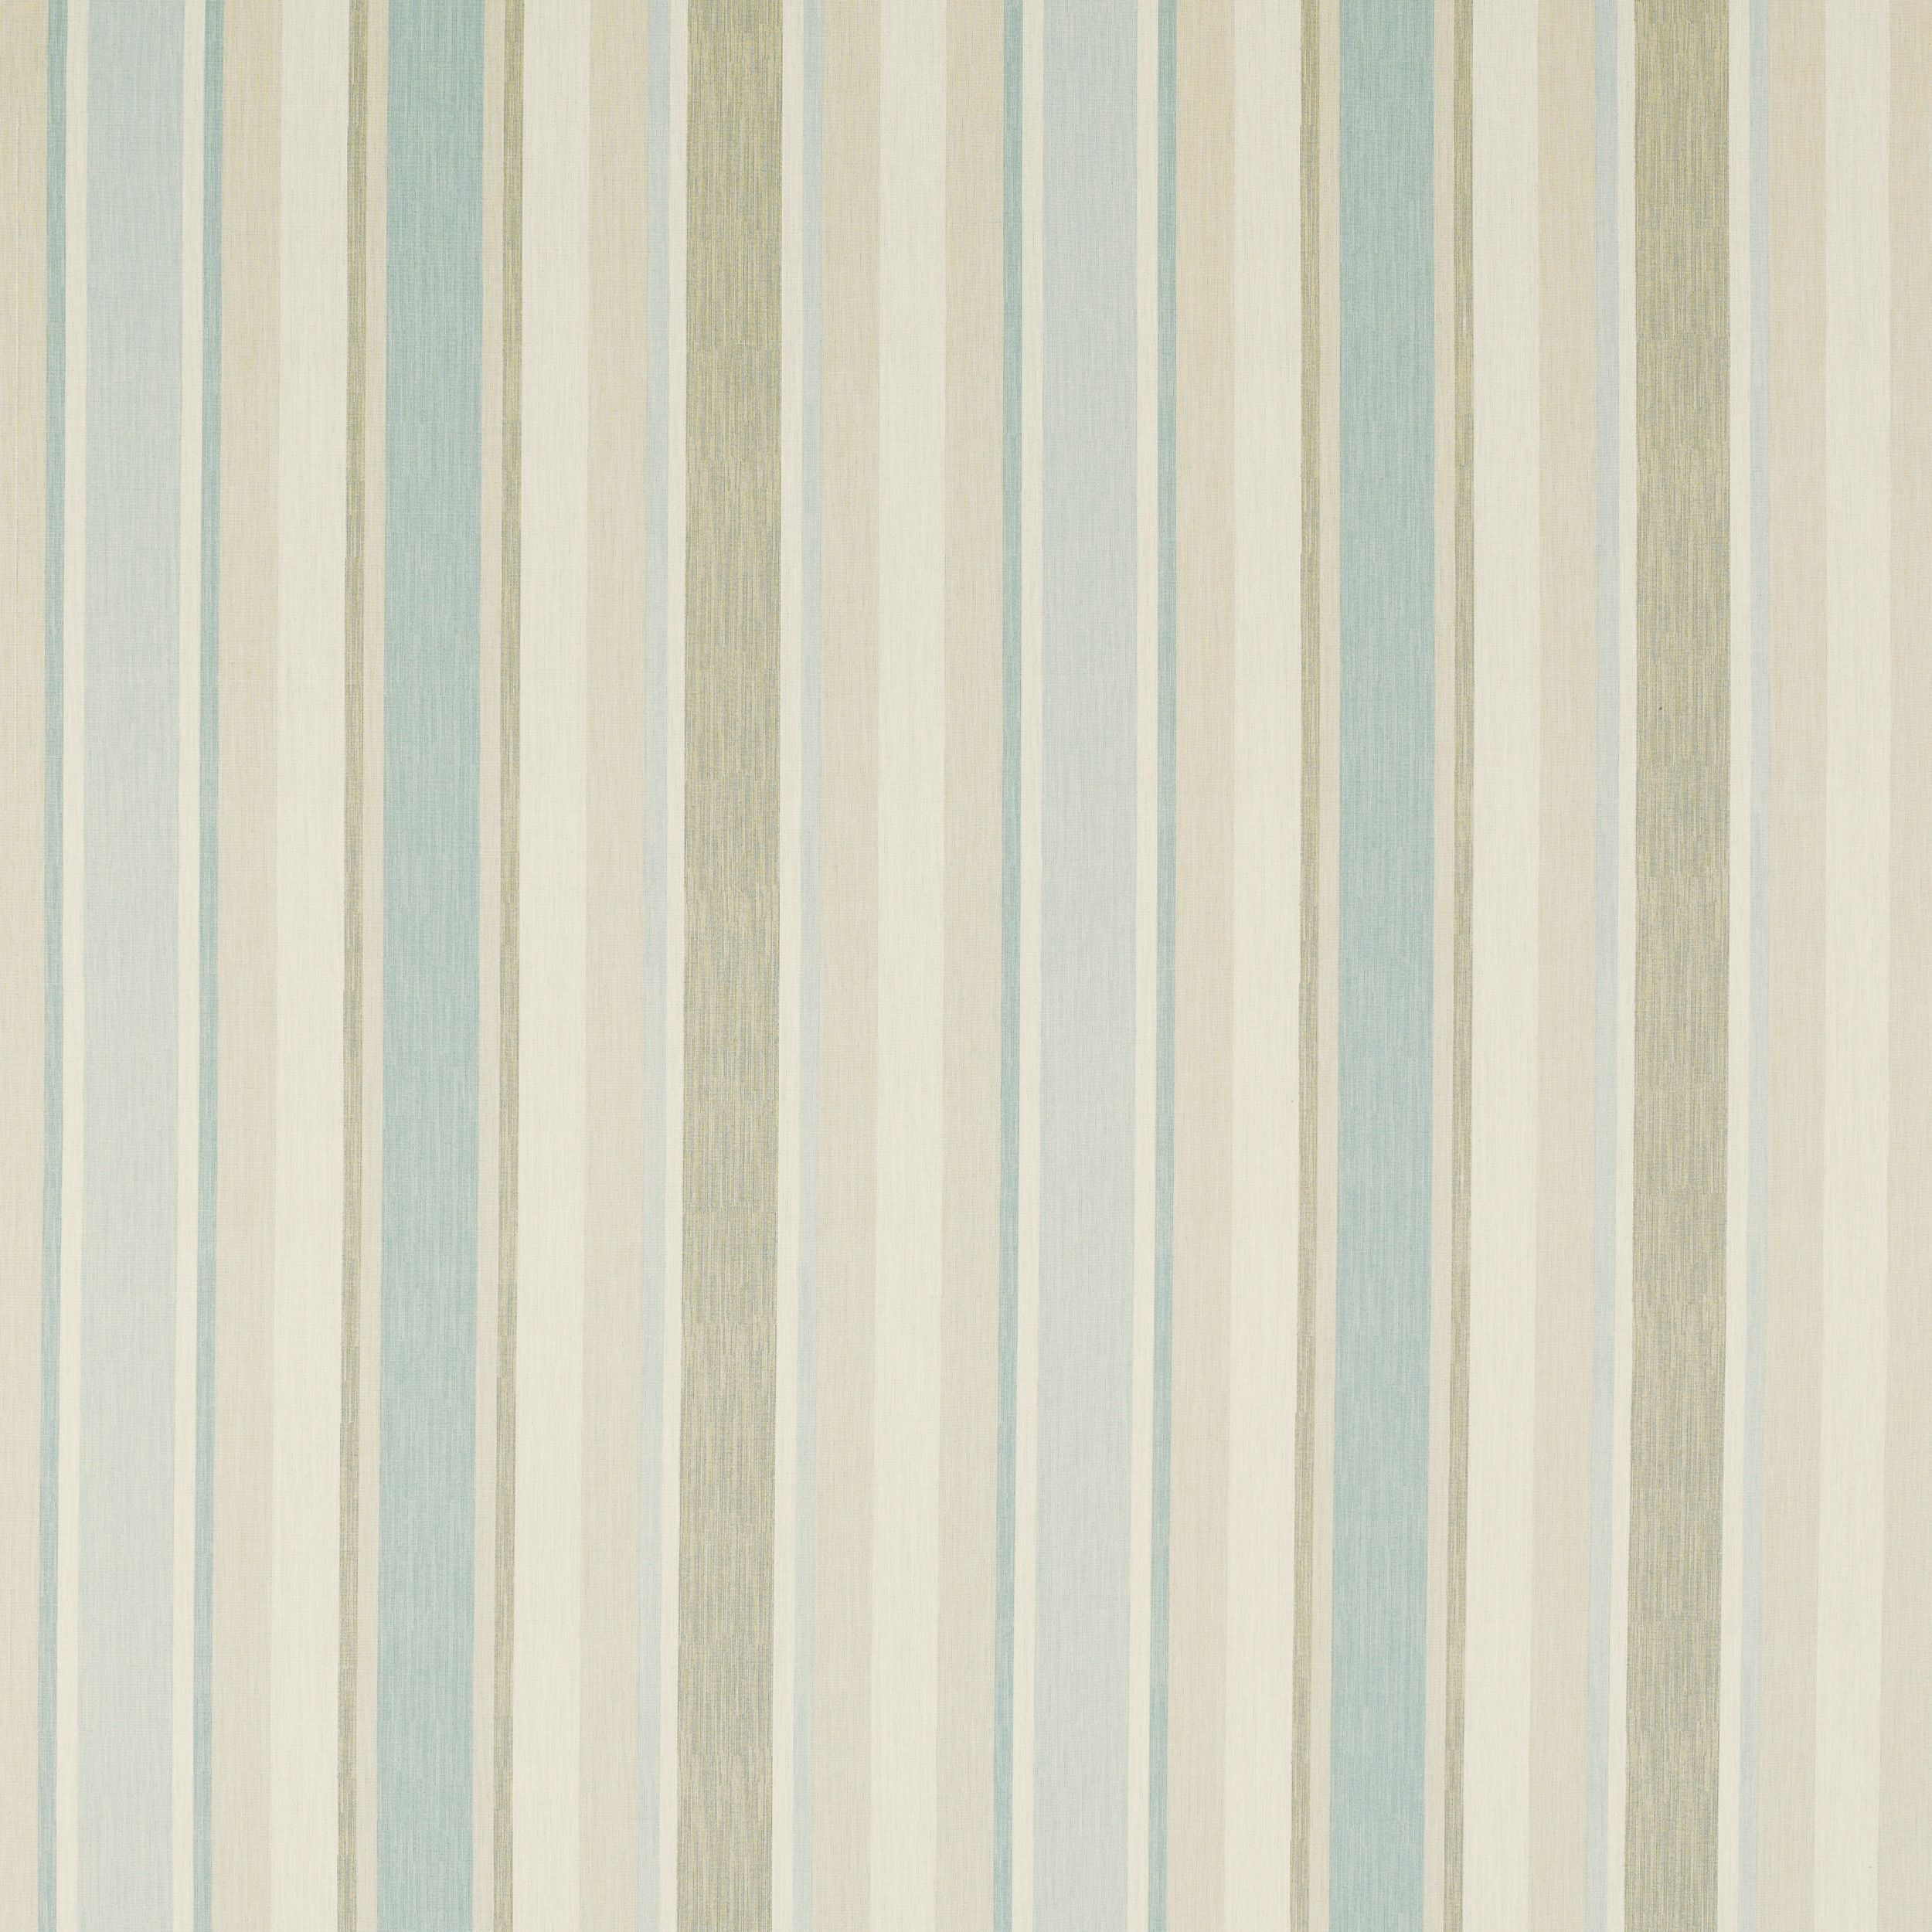 Awning Stripe Cotton/Linen Fabric Duck Egg (poss Kitchen